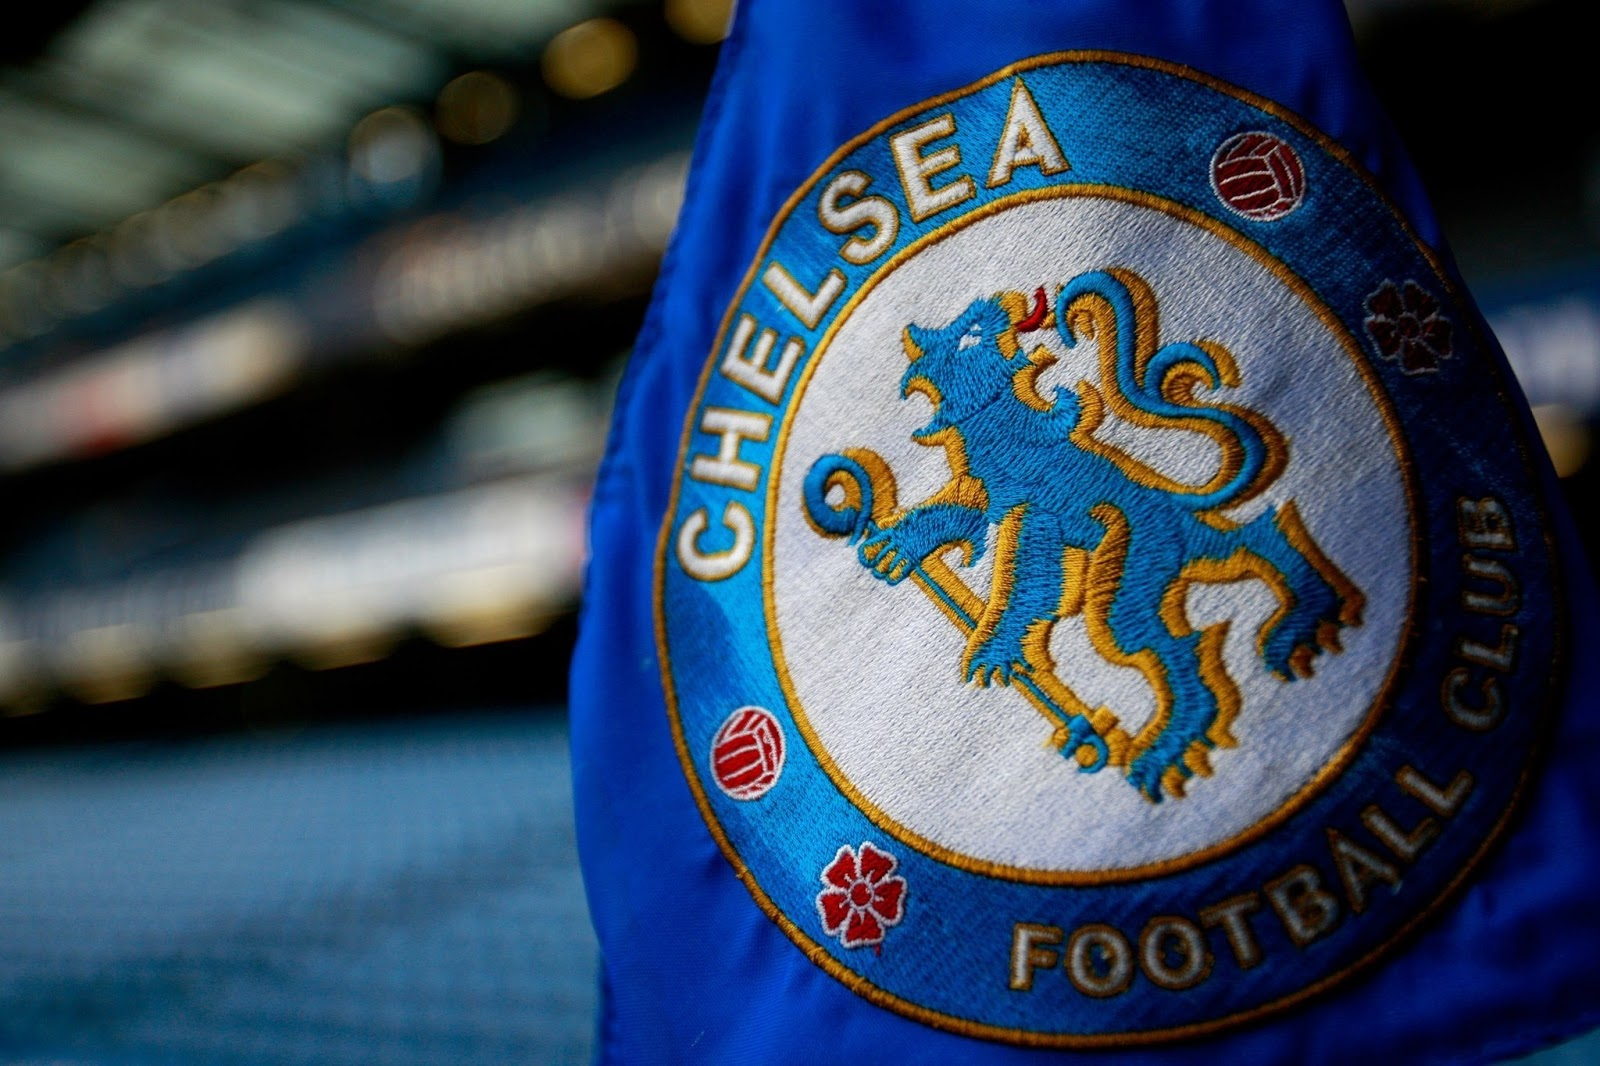 TRUE BLUE:click here to download the mp3 chelsea anthem ...